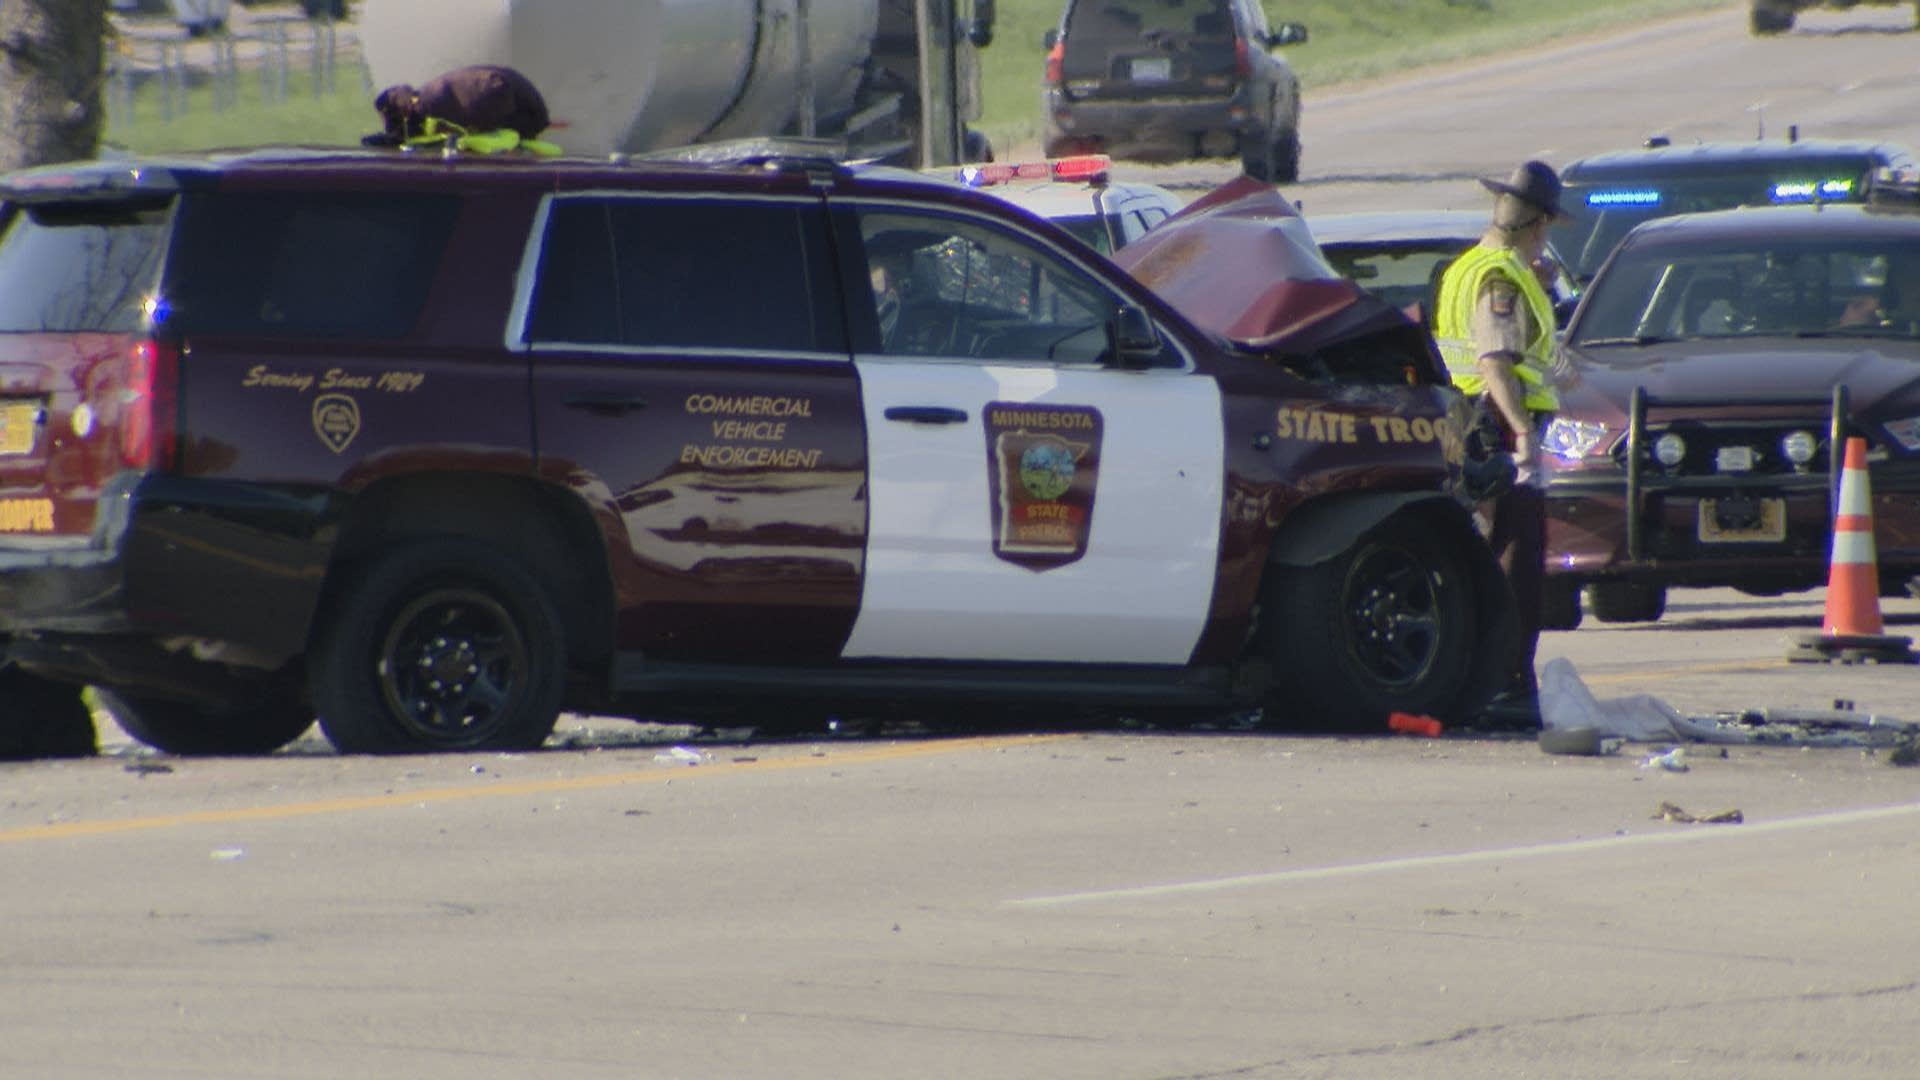 A trooper was seriously injured in a two-vehicle crash in Lakeville.